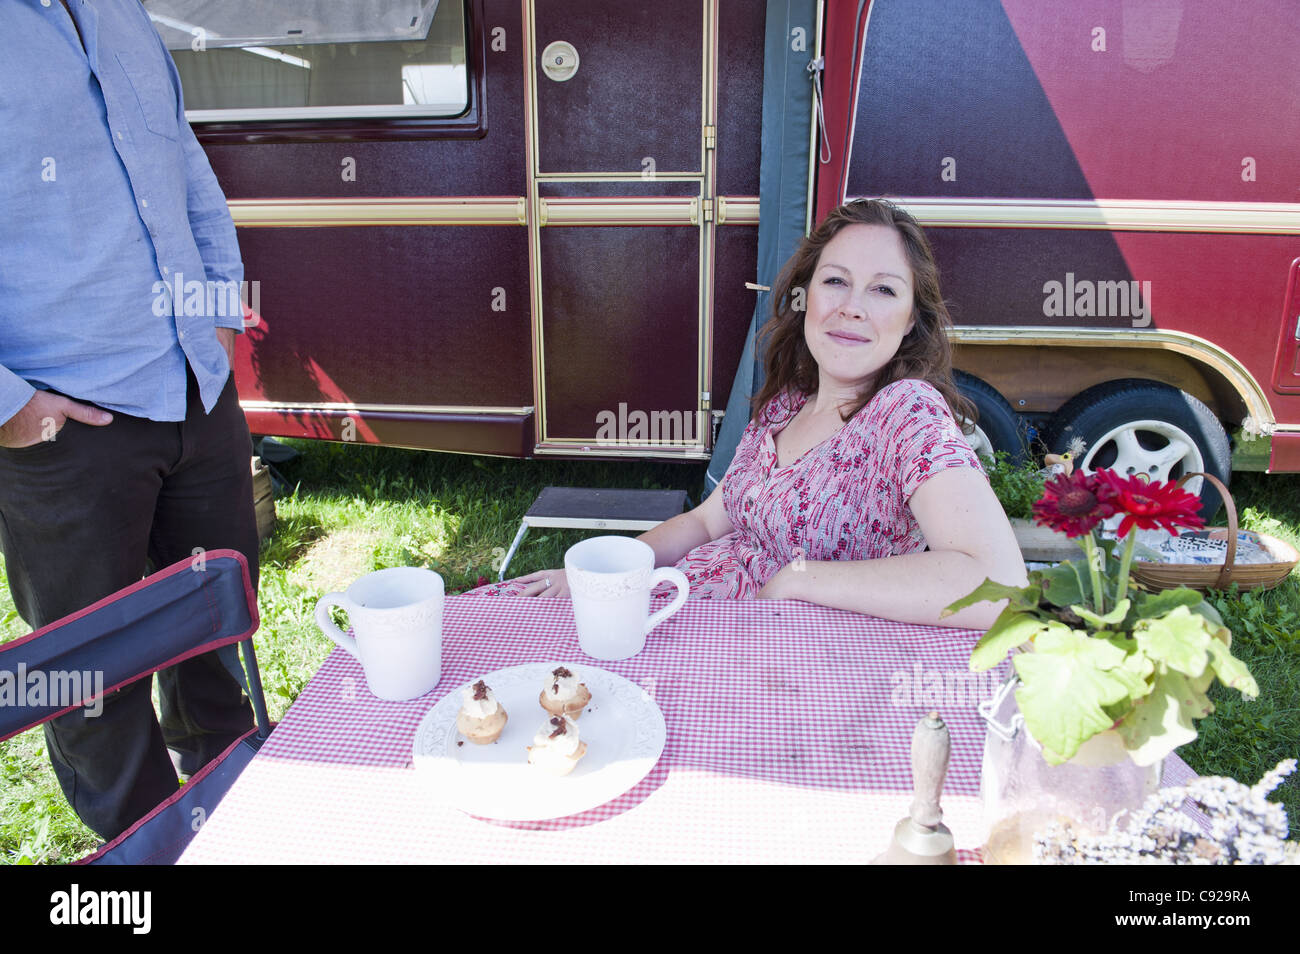 Woman picnicking outside trailer - Stock Image